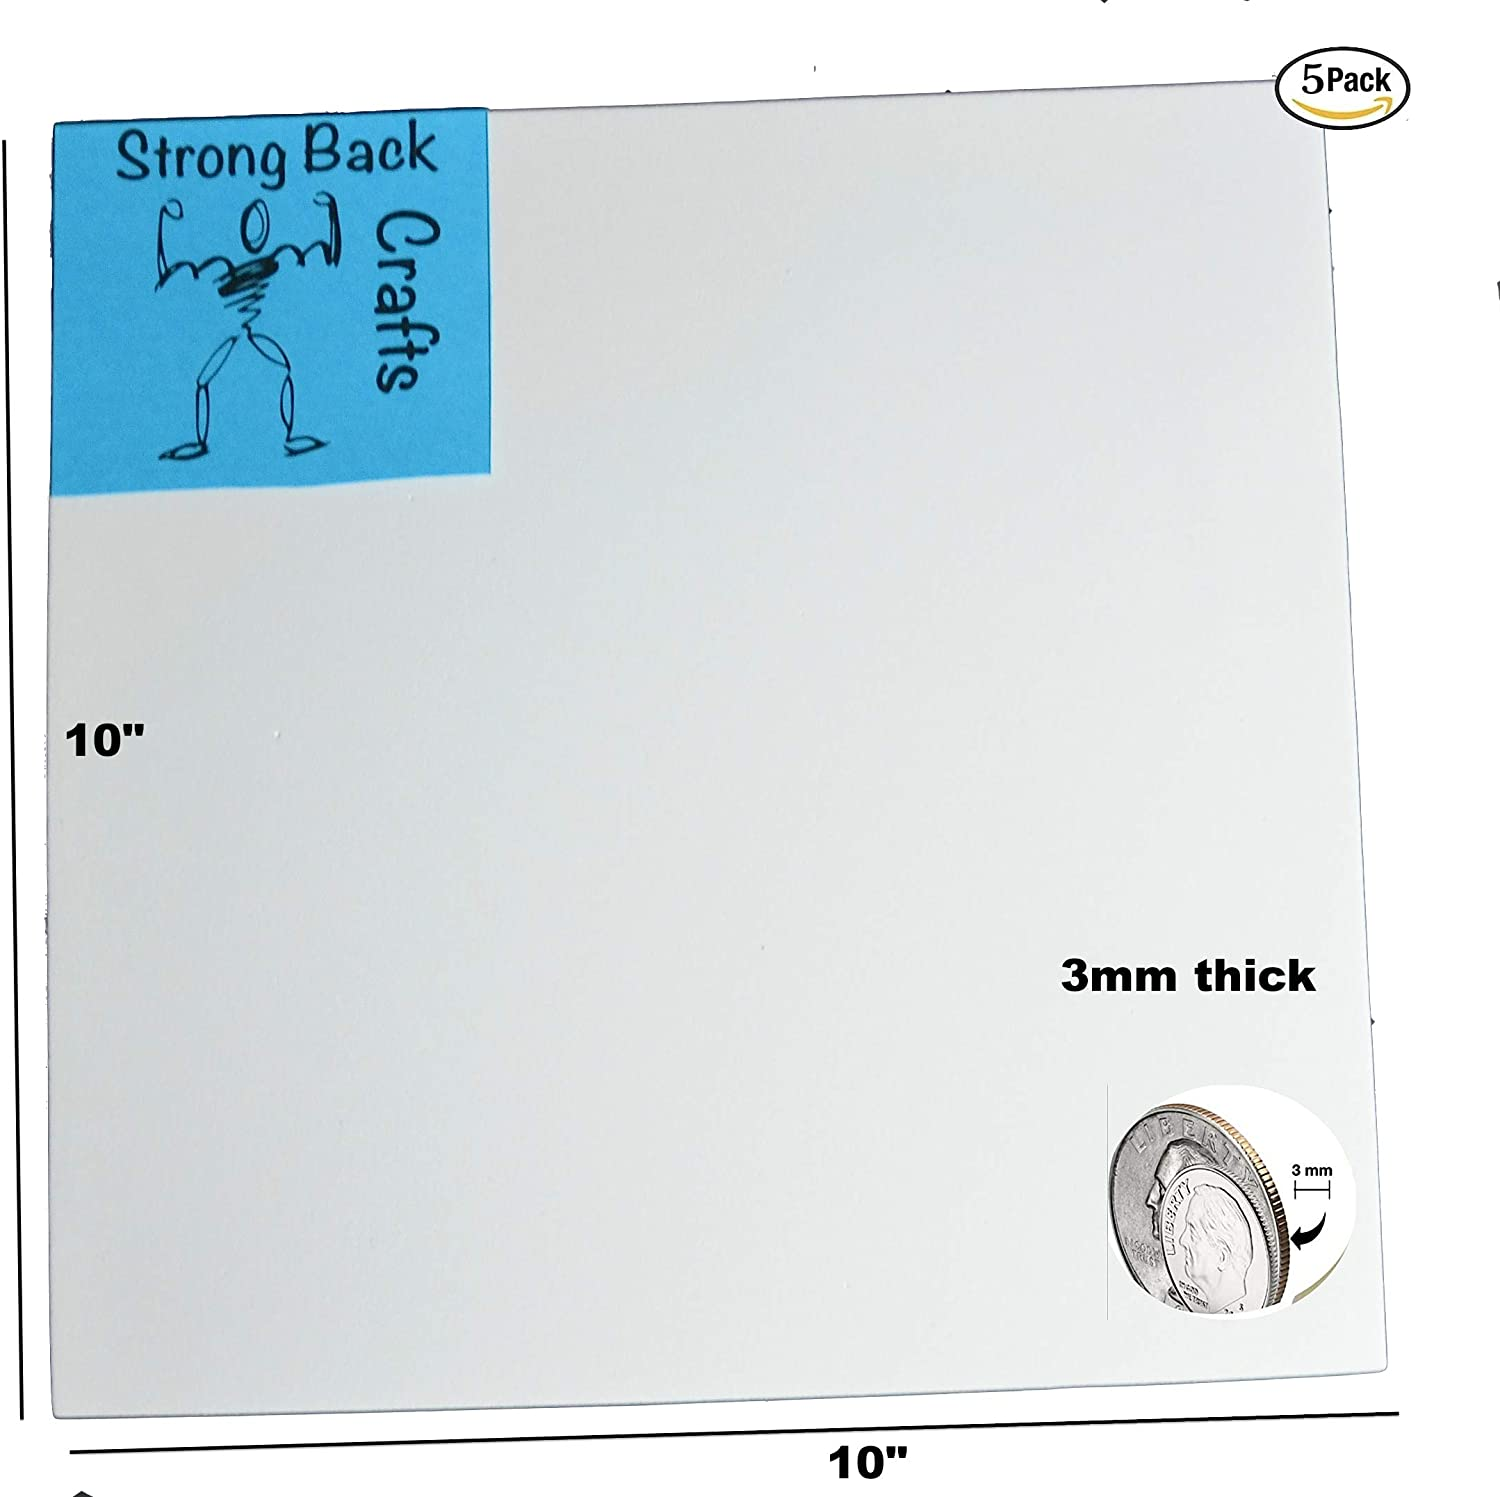 3mm by Strong Back Crafts- Self Adhesive Foam for Cosplay 5 Pack-White Self-Stick Adhesive 10 x 10 EVA High Density Foam Sheets 5 Pack Crafts /& Home